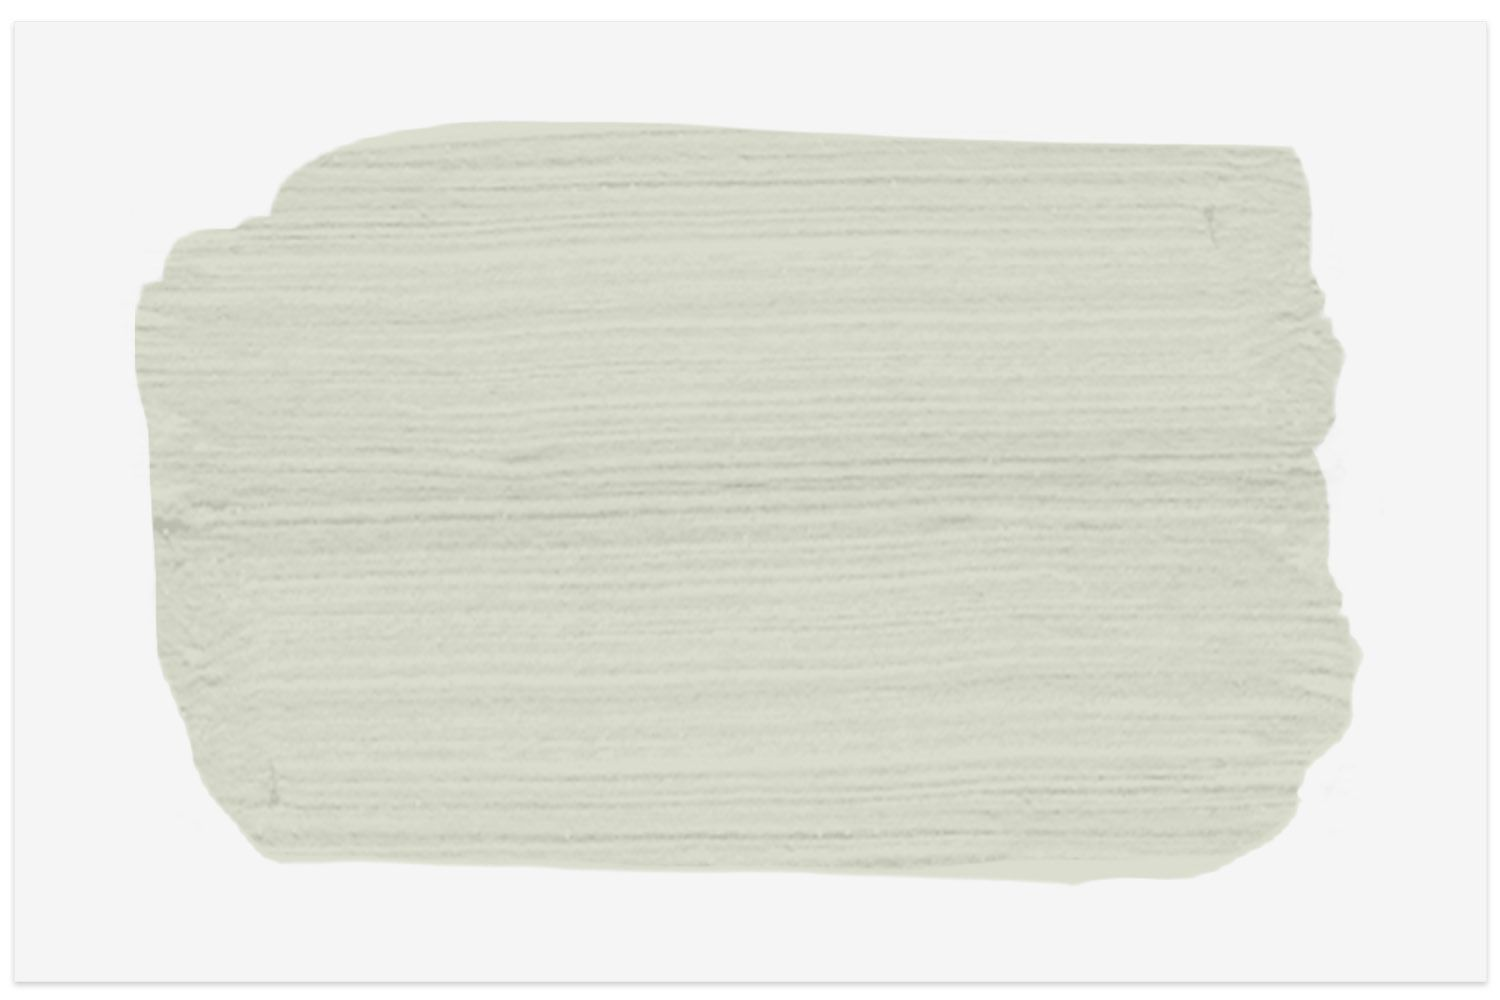 Desert Springs PPU10-15 paint swatch from Behr